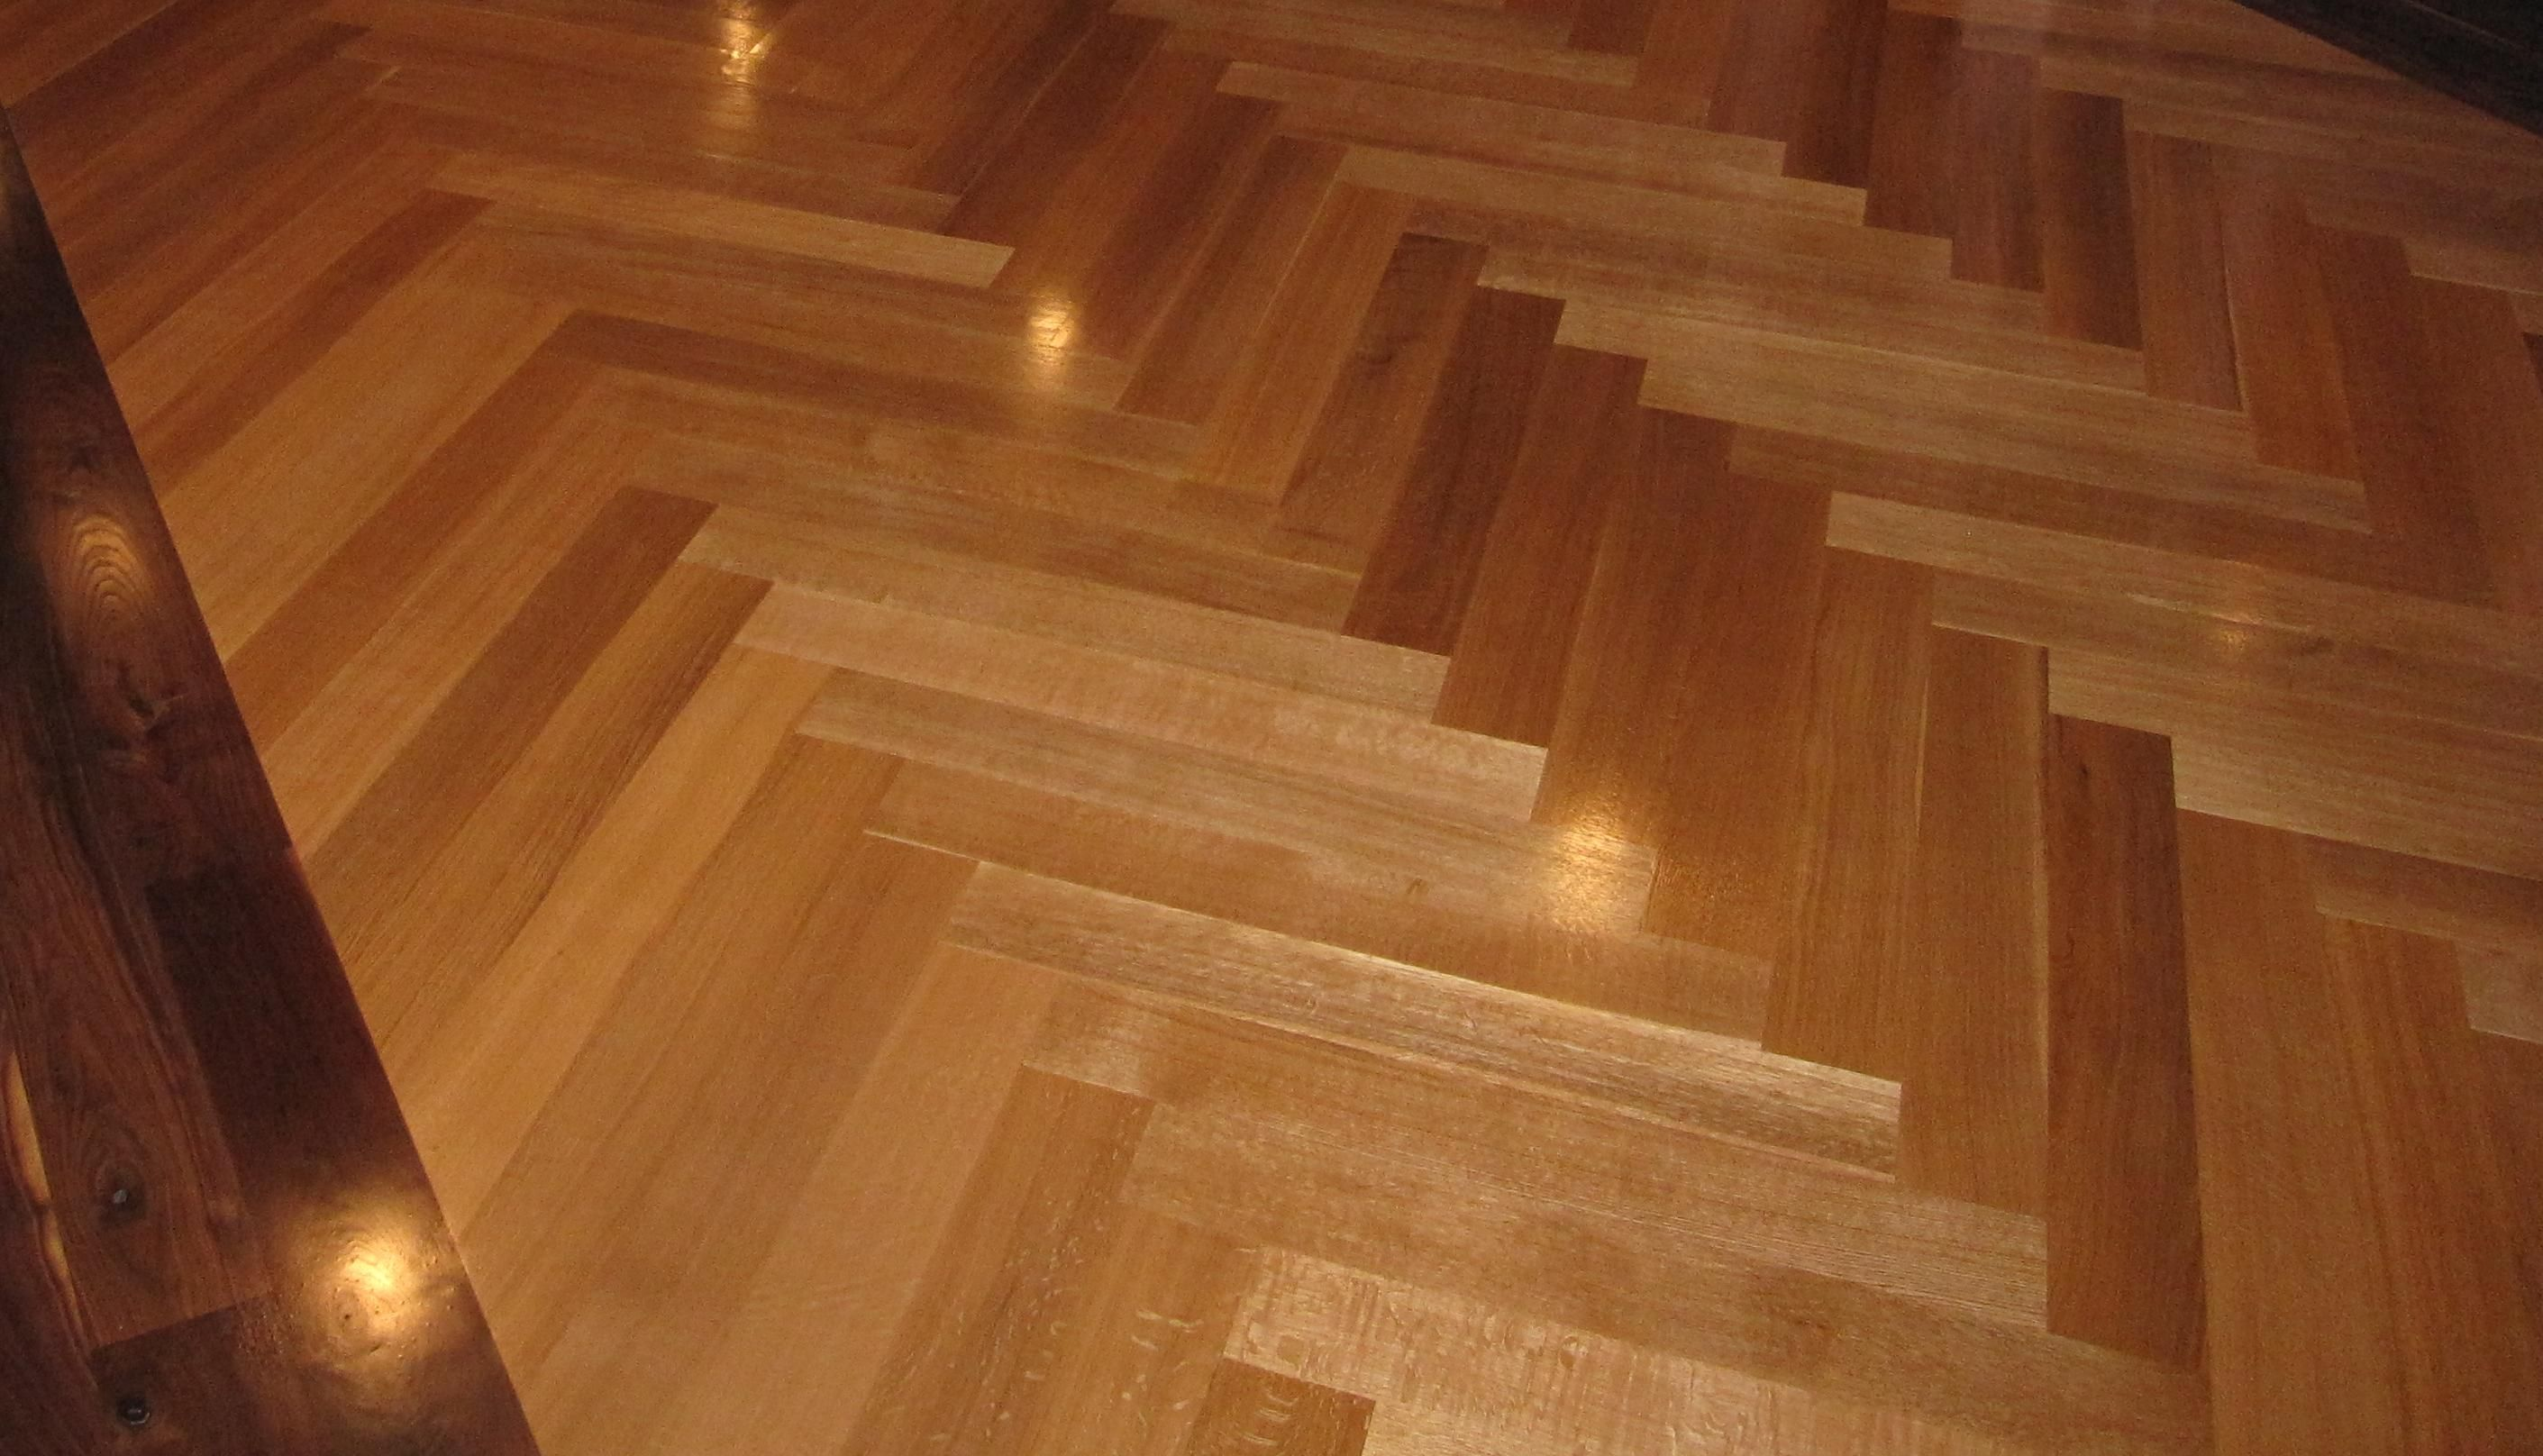 Ars Wooden Flooring Is The Best Herringbone Manufacturer We Are Also Offering S And Wood Floor In Mumbai